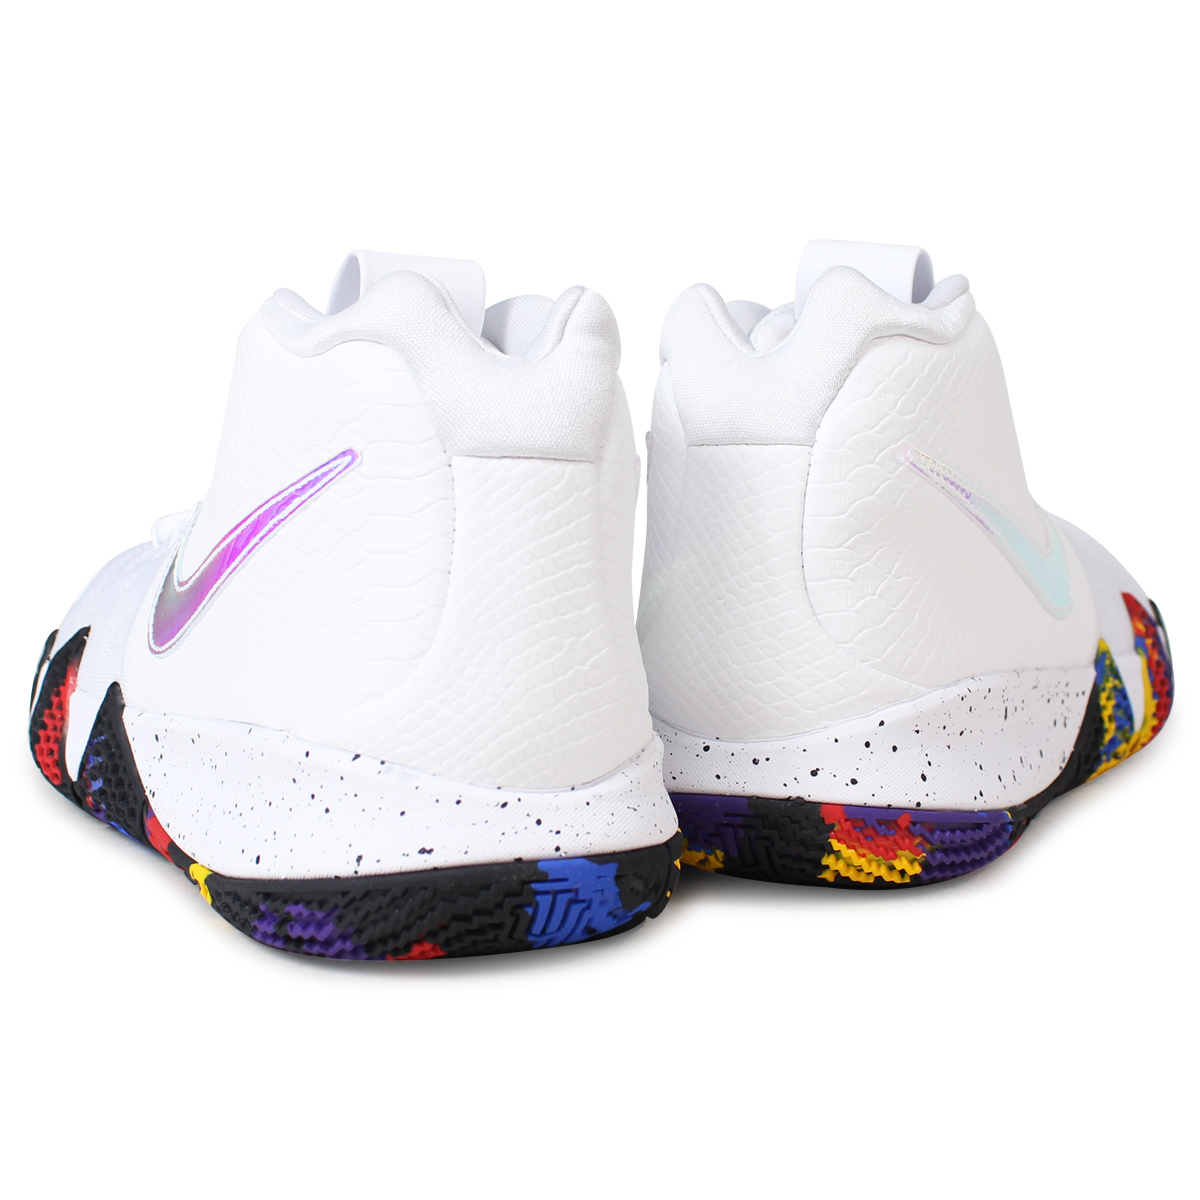 03bafc7d7cb ALLSPORTS  NIKE KYRIE 4 EP MARCH MADNESS Nike chi Lee 4 sneakers men ...